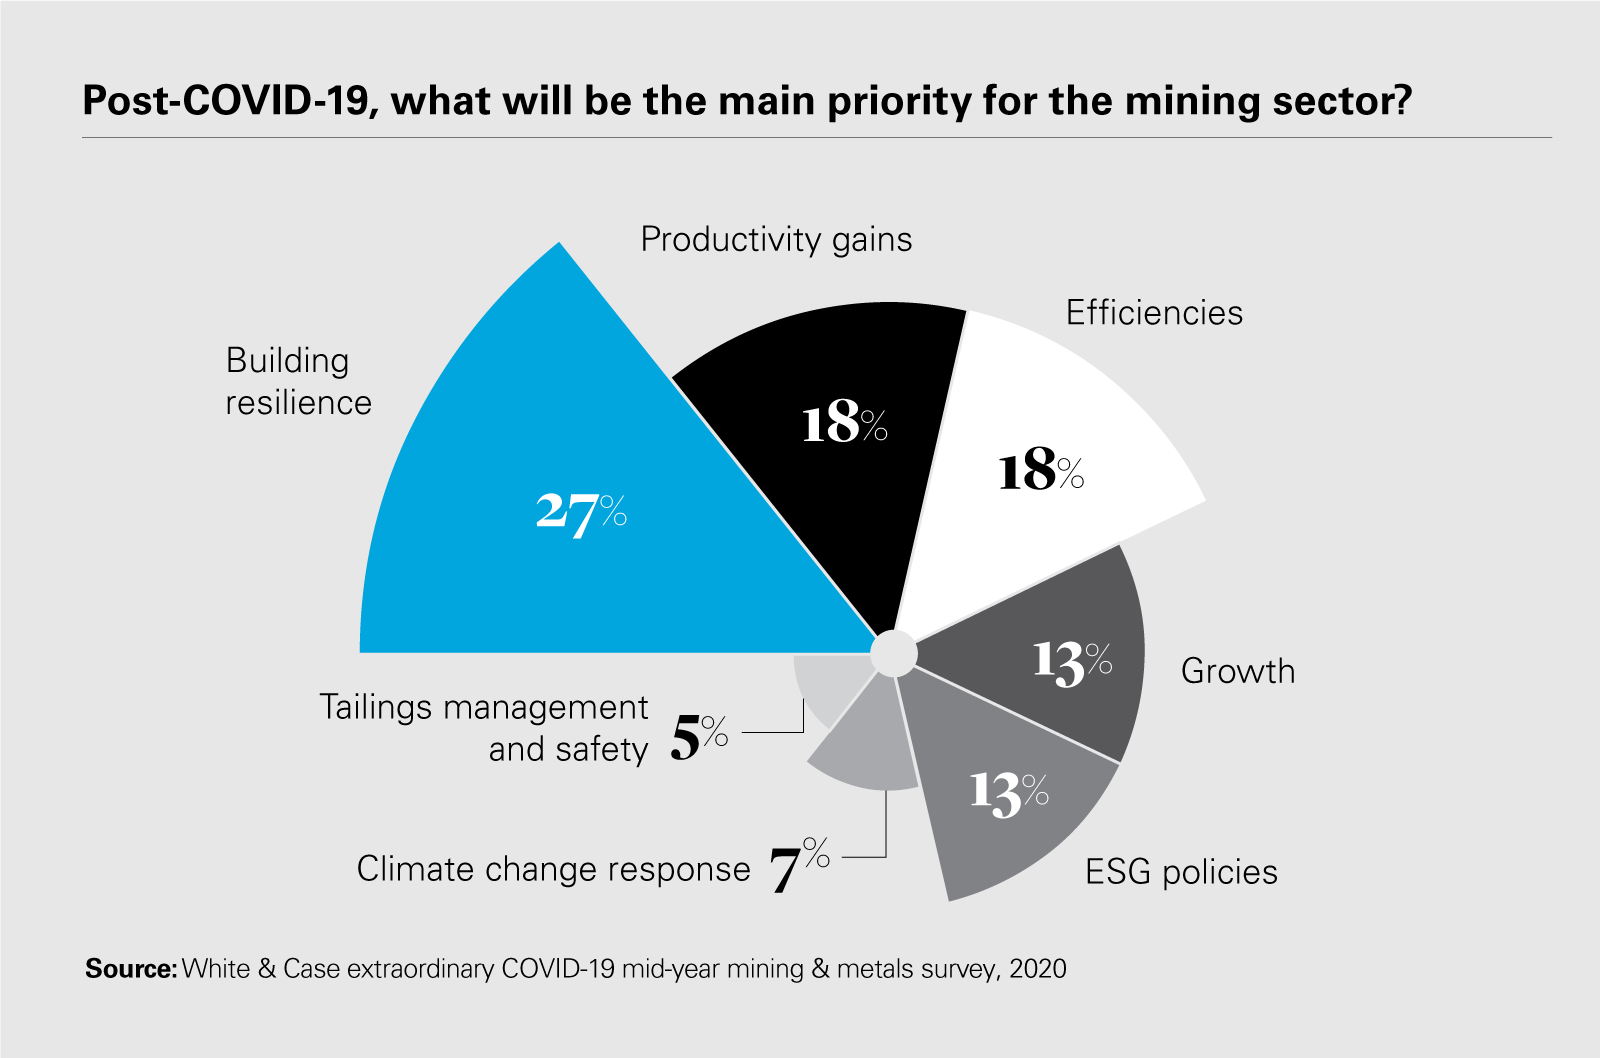 Post-COVID-19, what will be the main priority for the mining sector?